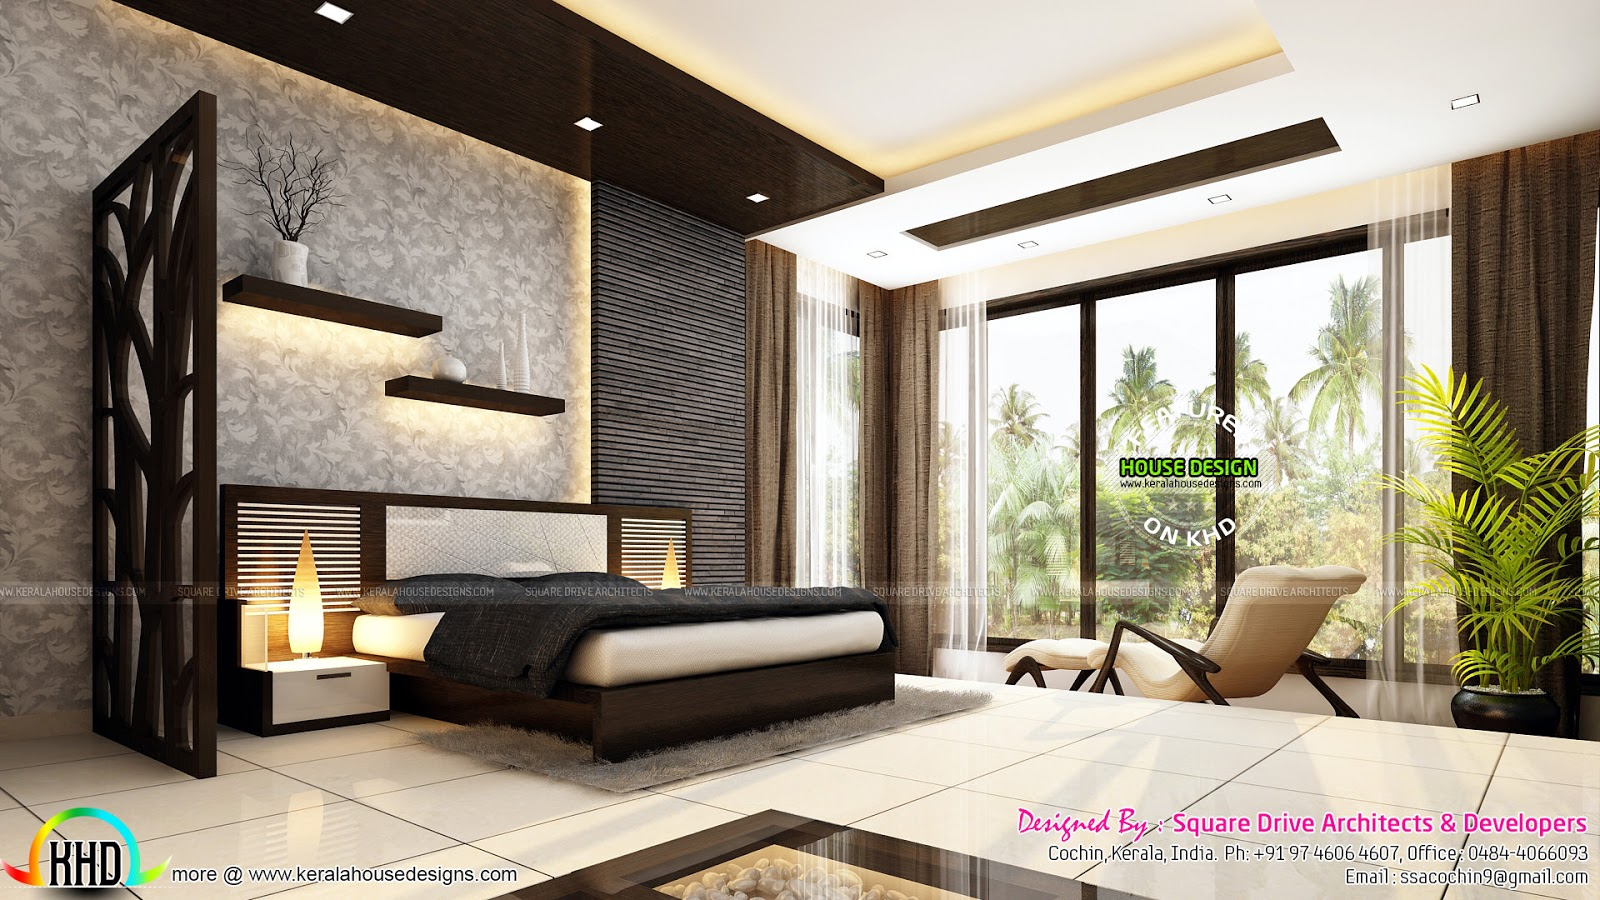 Very beautiful modern interior designs kerala home design and floor plans - Bedrooms images ...